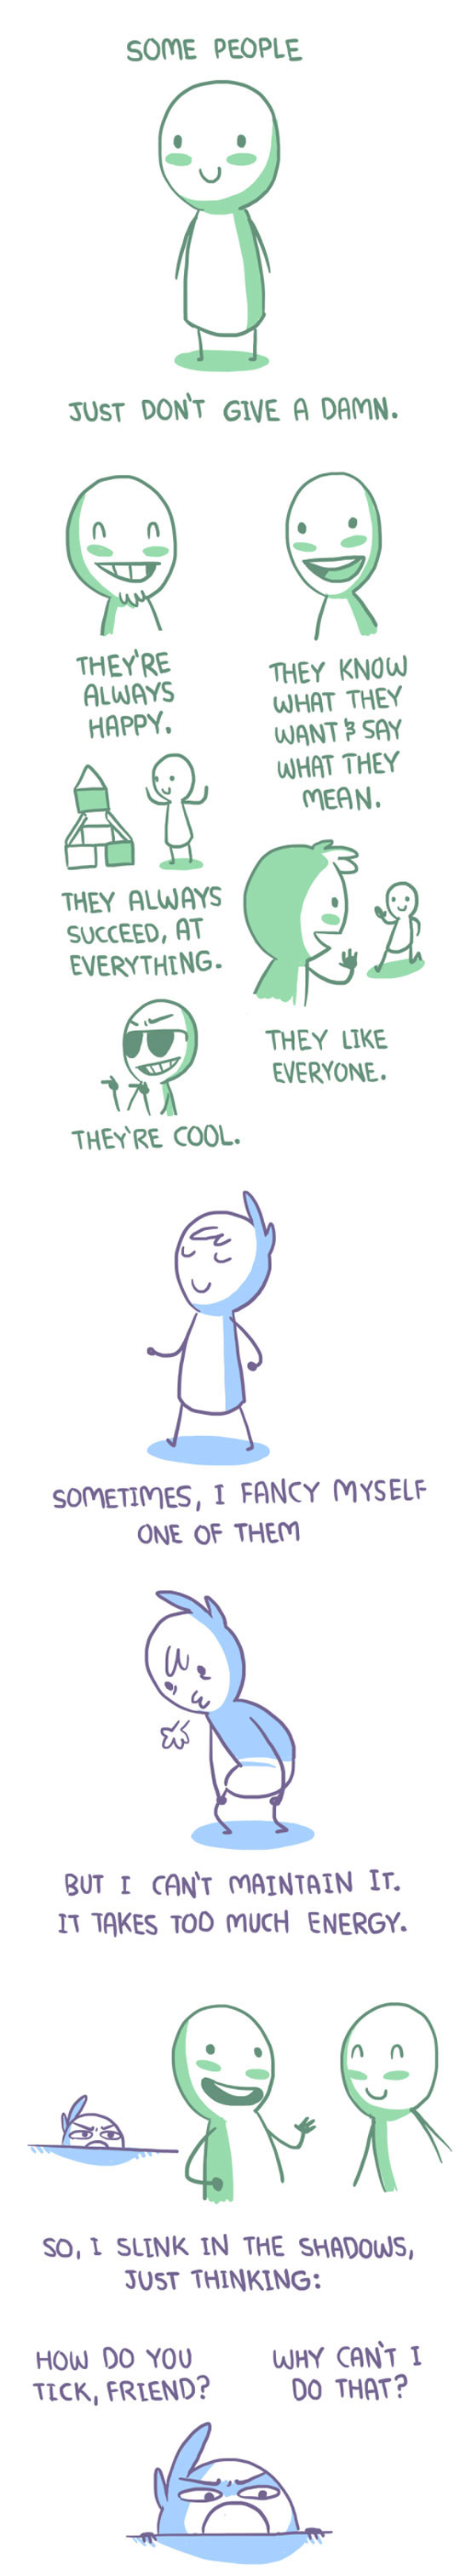 funny-webcomic-cool-people-energy-envy